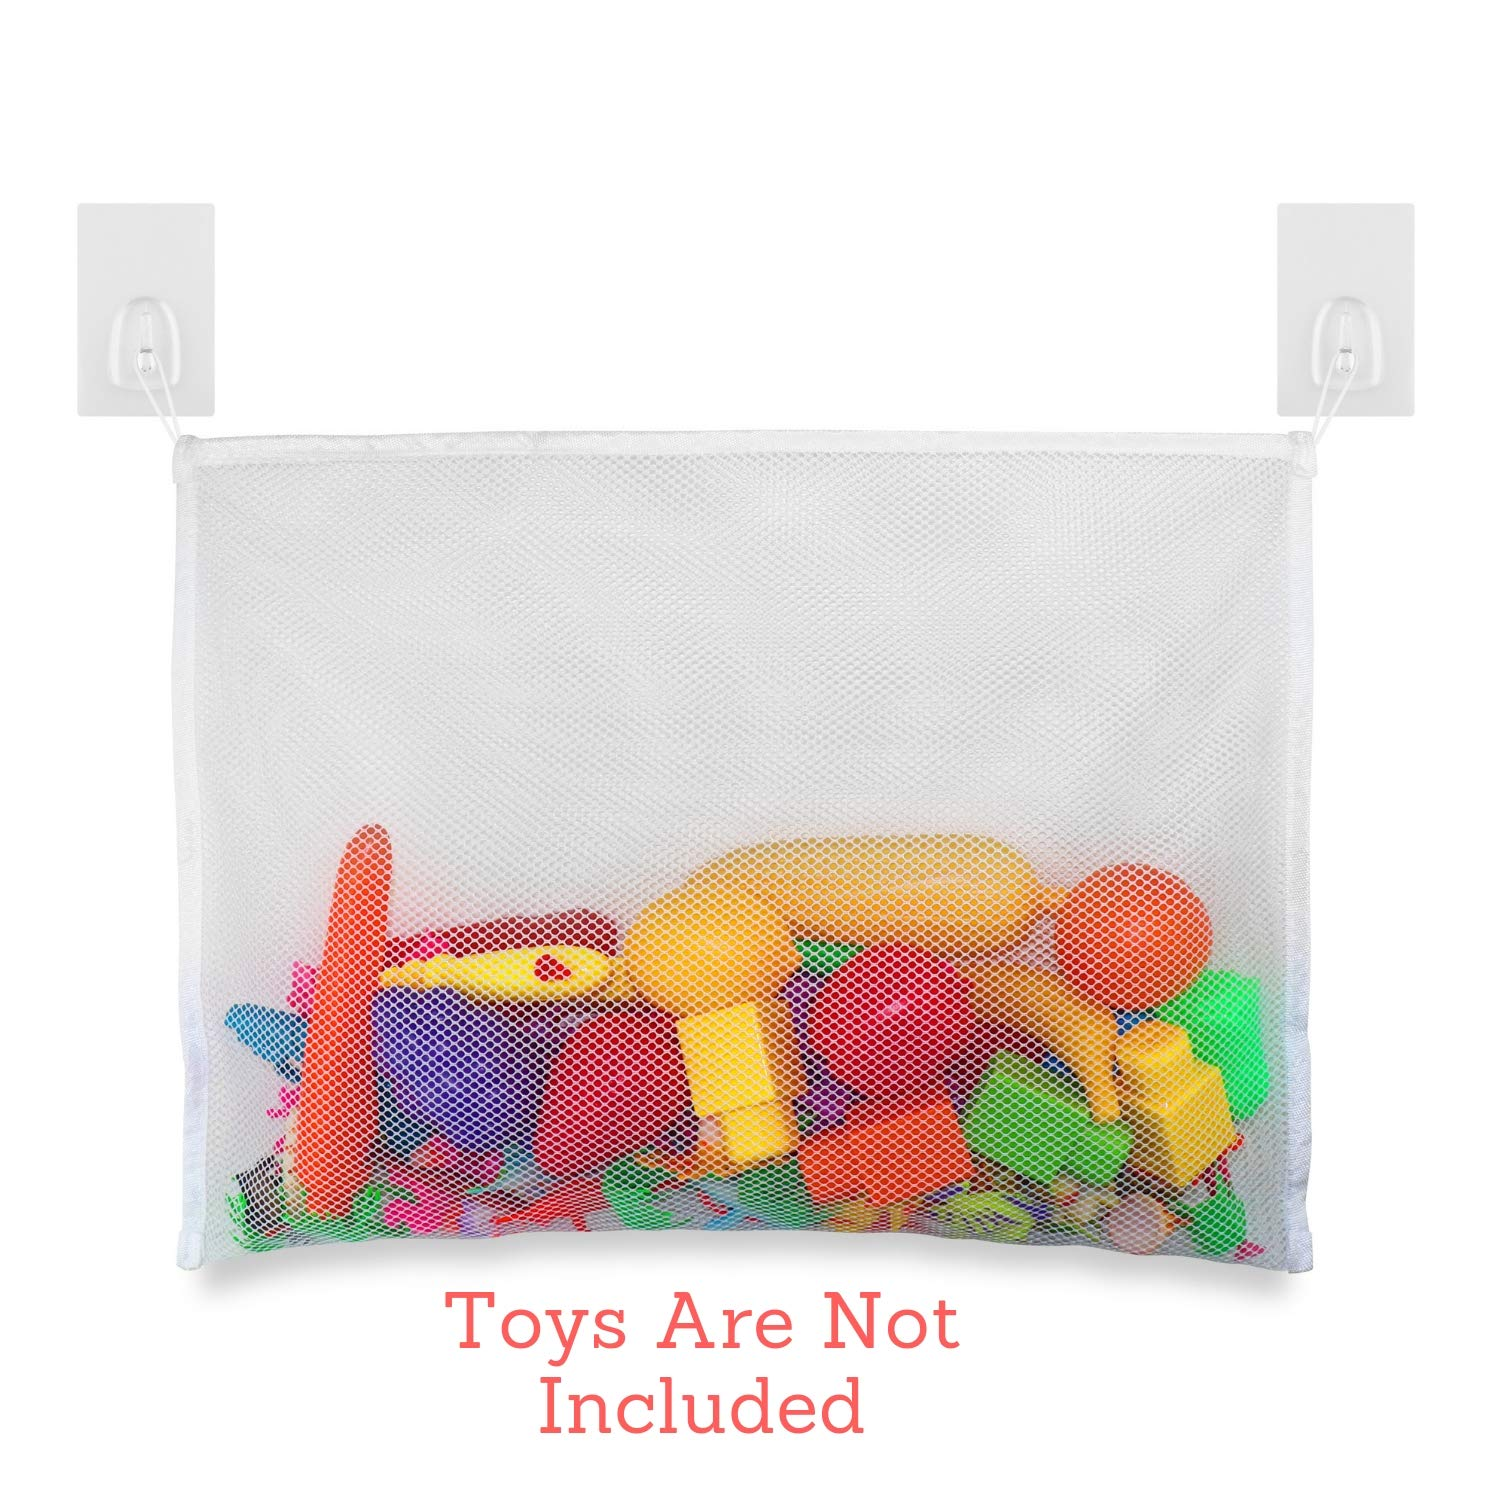 Net Playtime for Bathtime Durable Design with Strong Tile Hooks- Large Storage-Bag-Holder for Toys Or as a Shower Caddy Digital Tech Baby-Toddler Bath Tub Toys Organizer-Storage Mold Free Mesh